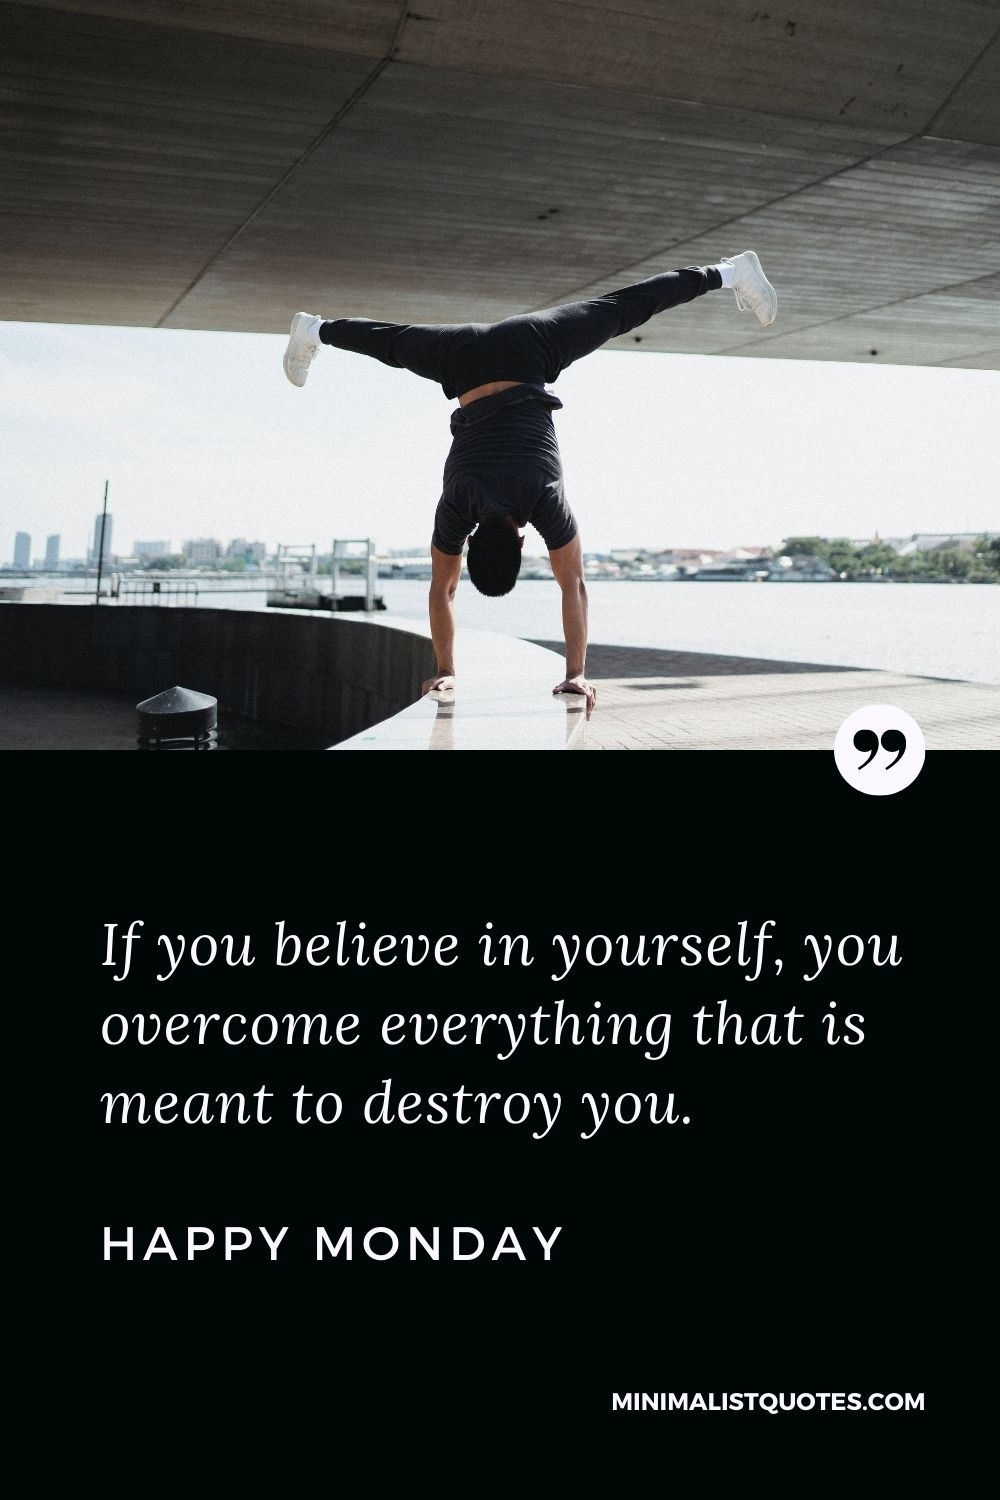 Monday Motivation quote & message with image: If you believe in yourself, you overcome everything that is meant to destroy you. Happy Monday!